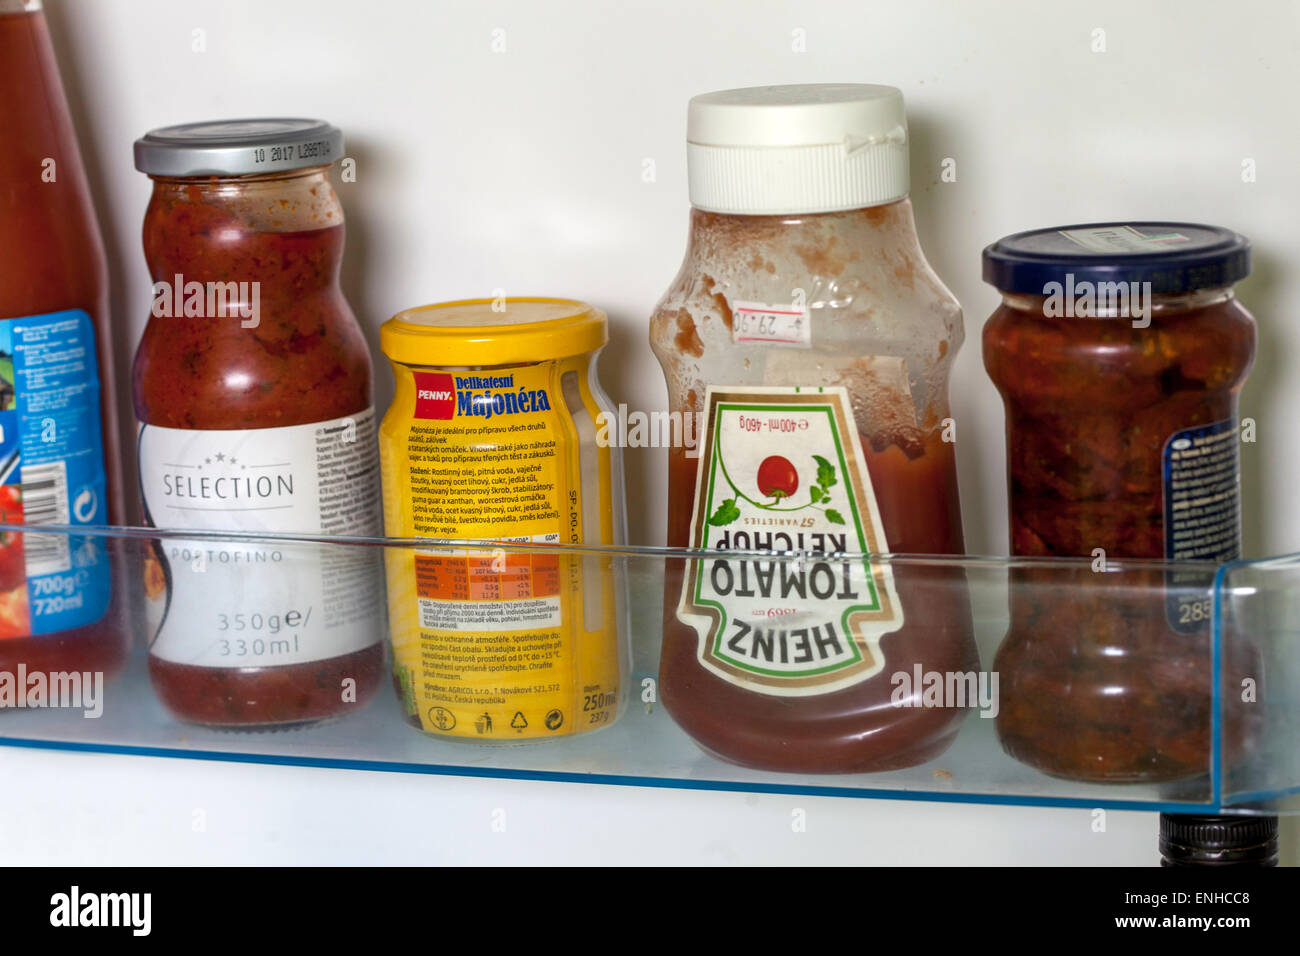 Heinz ketchup, fridge - Stock Image